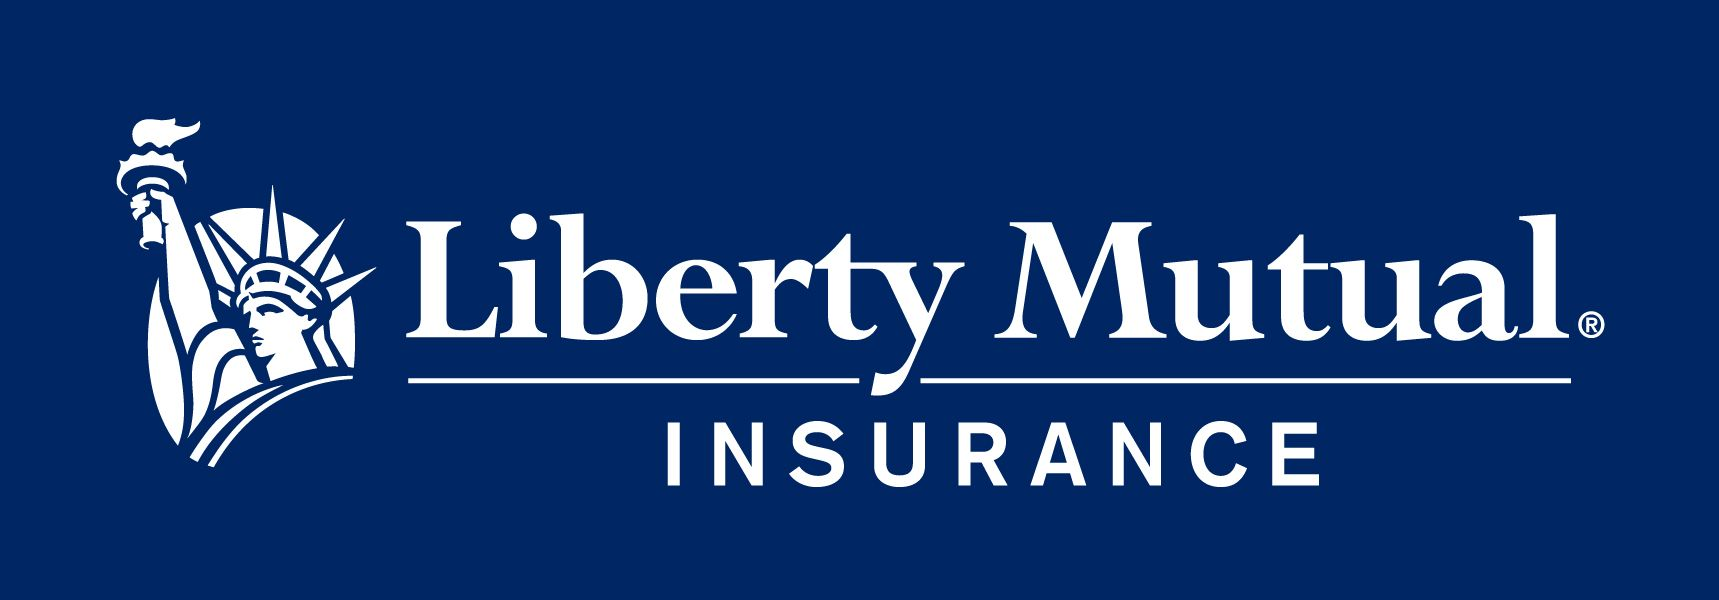 Liberty Mutual Insurance Quote Image Result For Liberty Mutual Insurance  Branding  Pinterest .